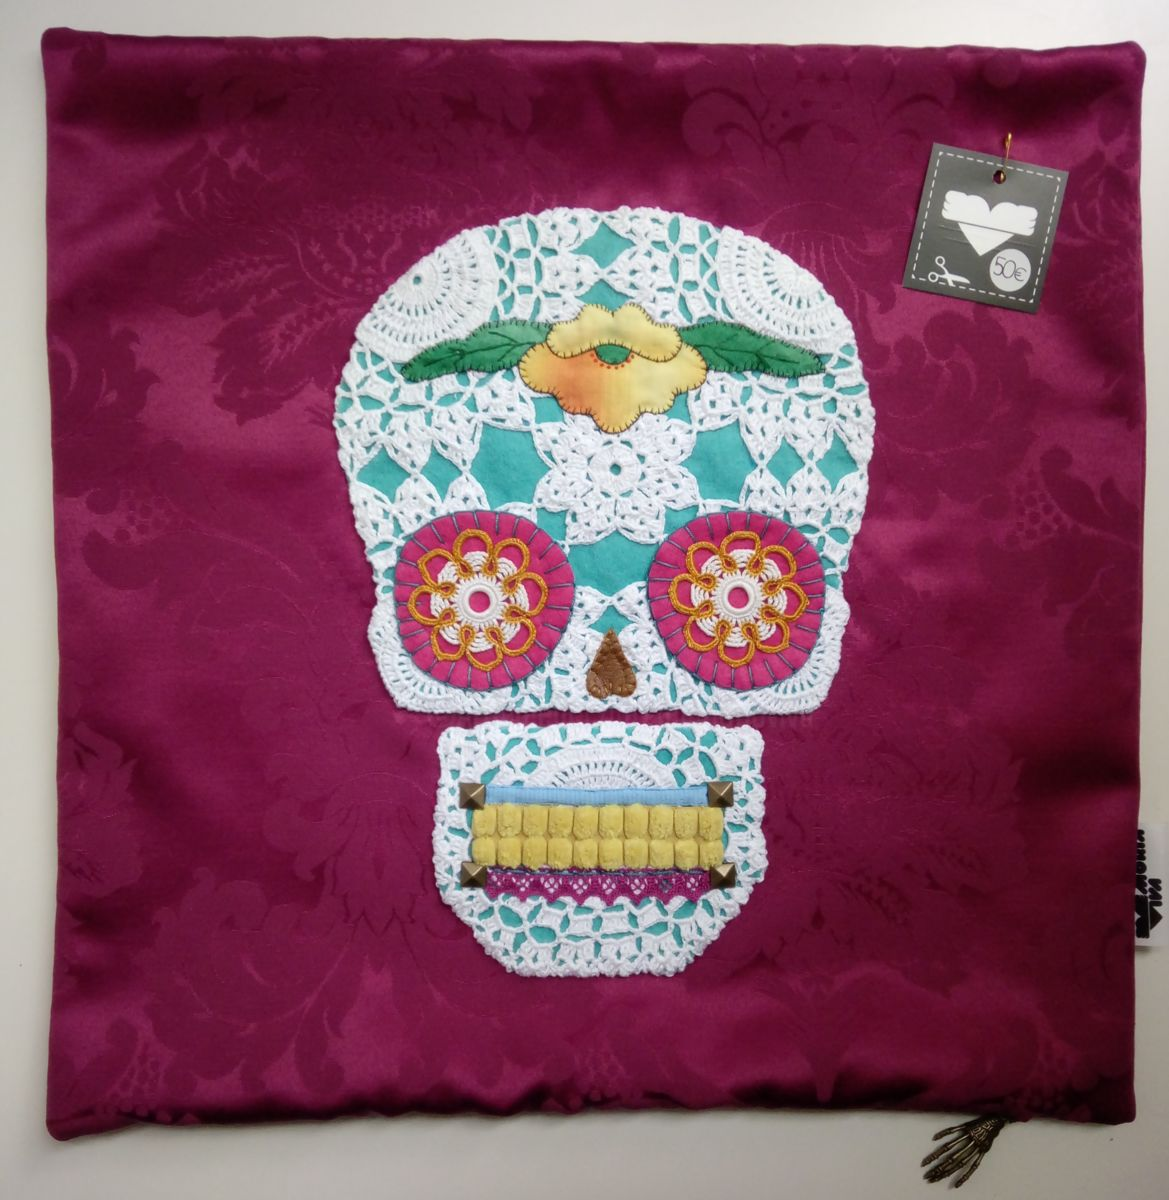 Unique Handstiched Mexican Skull Pillow Case - Mixed Media ©2018 by Memória Viva -            pillow, cushion, day of the dead, crochet, embroidery, memoria viva, mexican skull